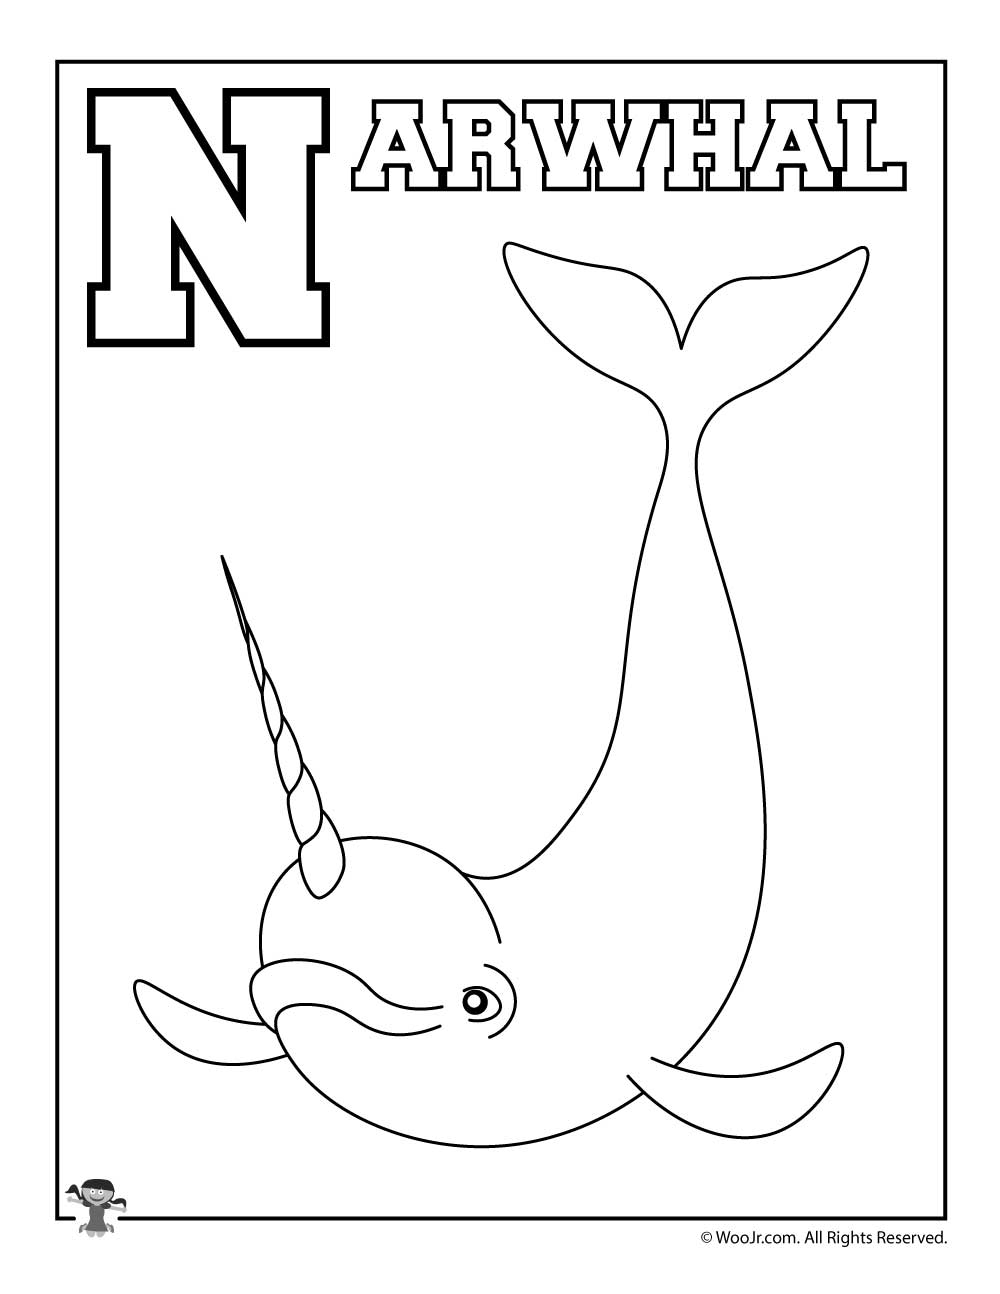 - N Is For Narwhal Coloring Page Woo! Jr. Kids Activities